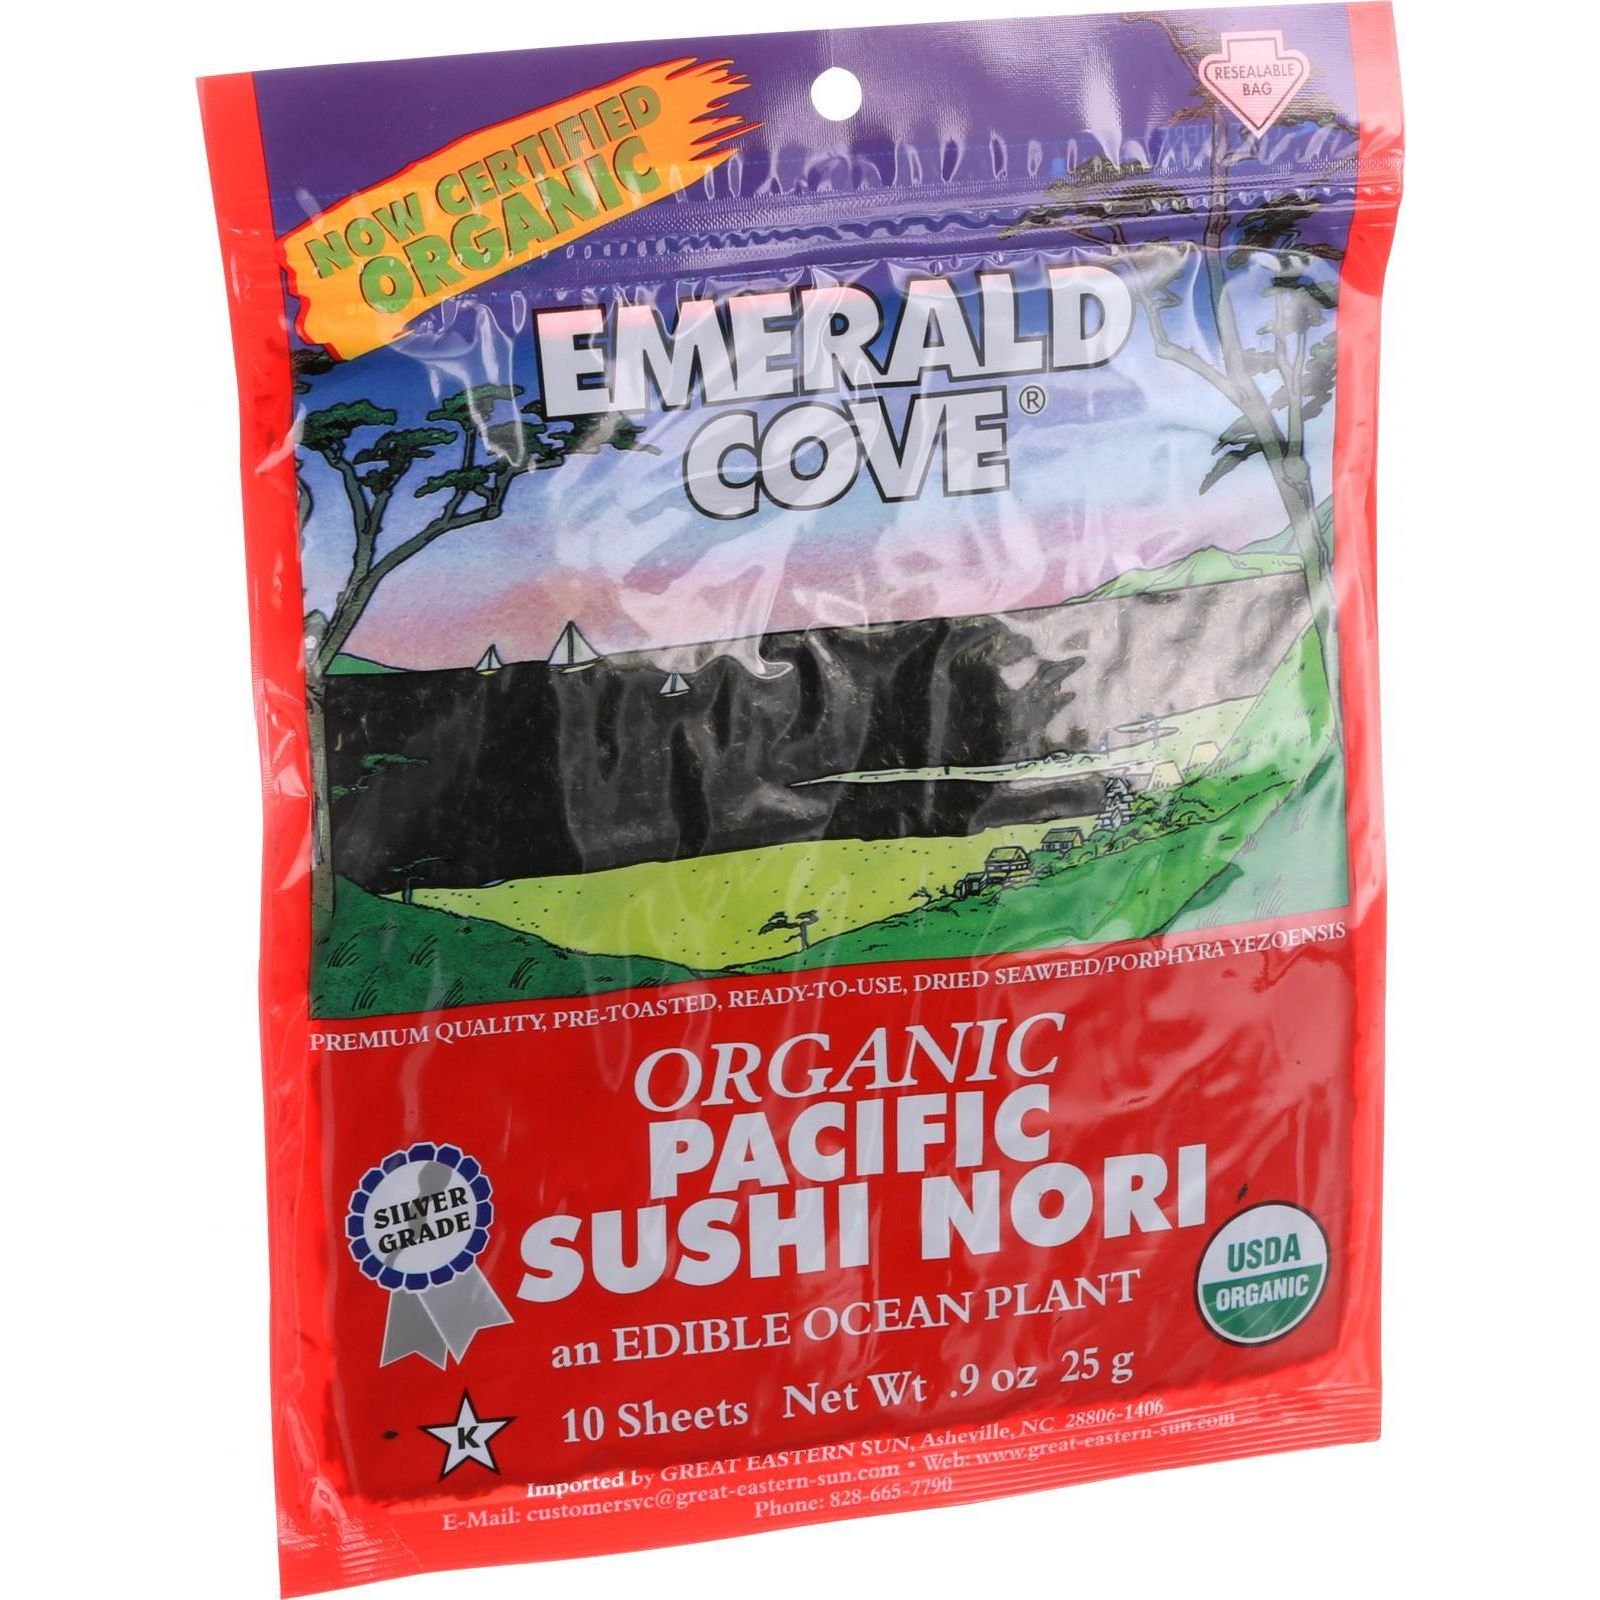 Emerald Cove Organic Pacific Sushi Nori Toasted Silver Grade 10 SHeets Case of 6 by